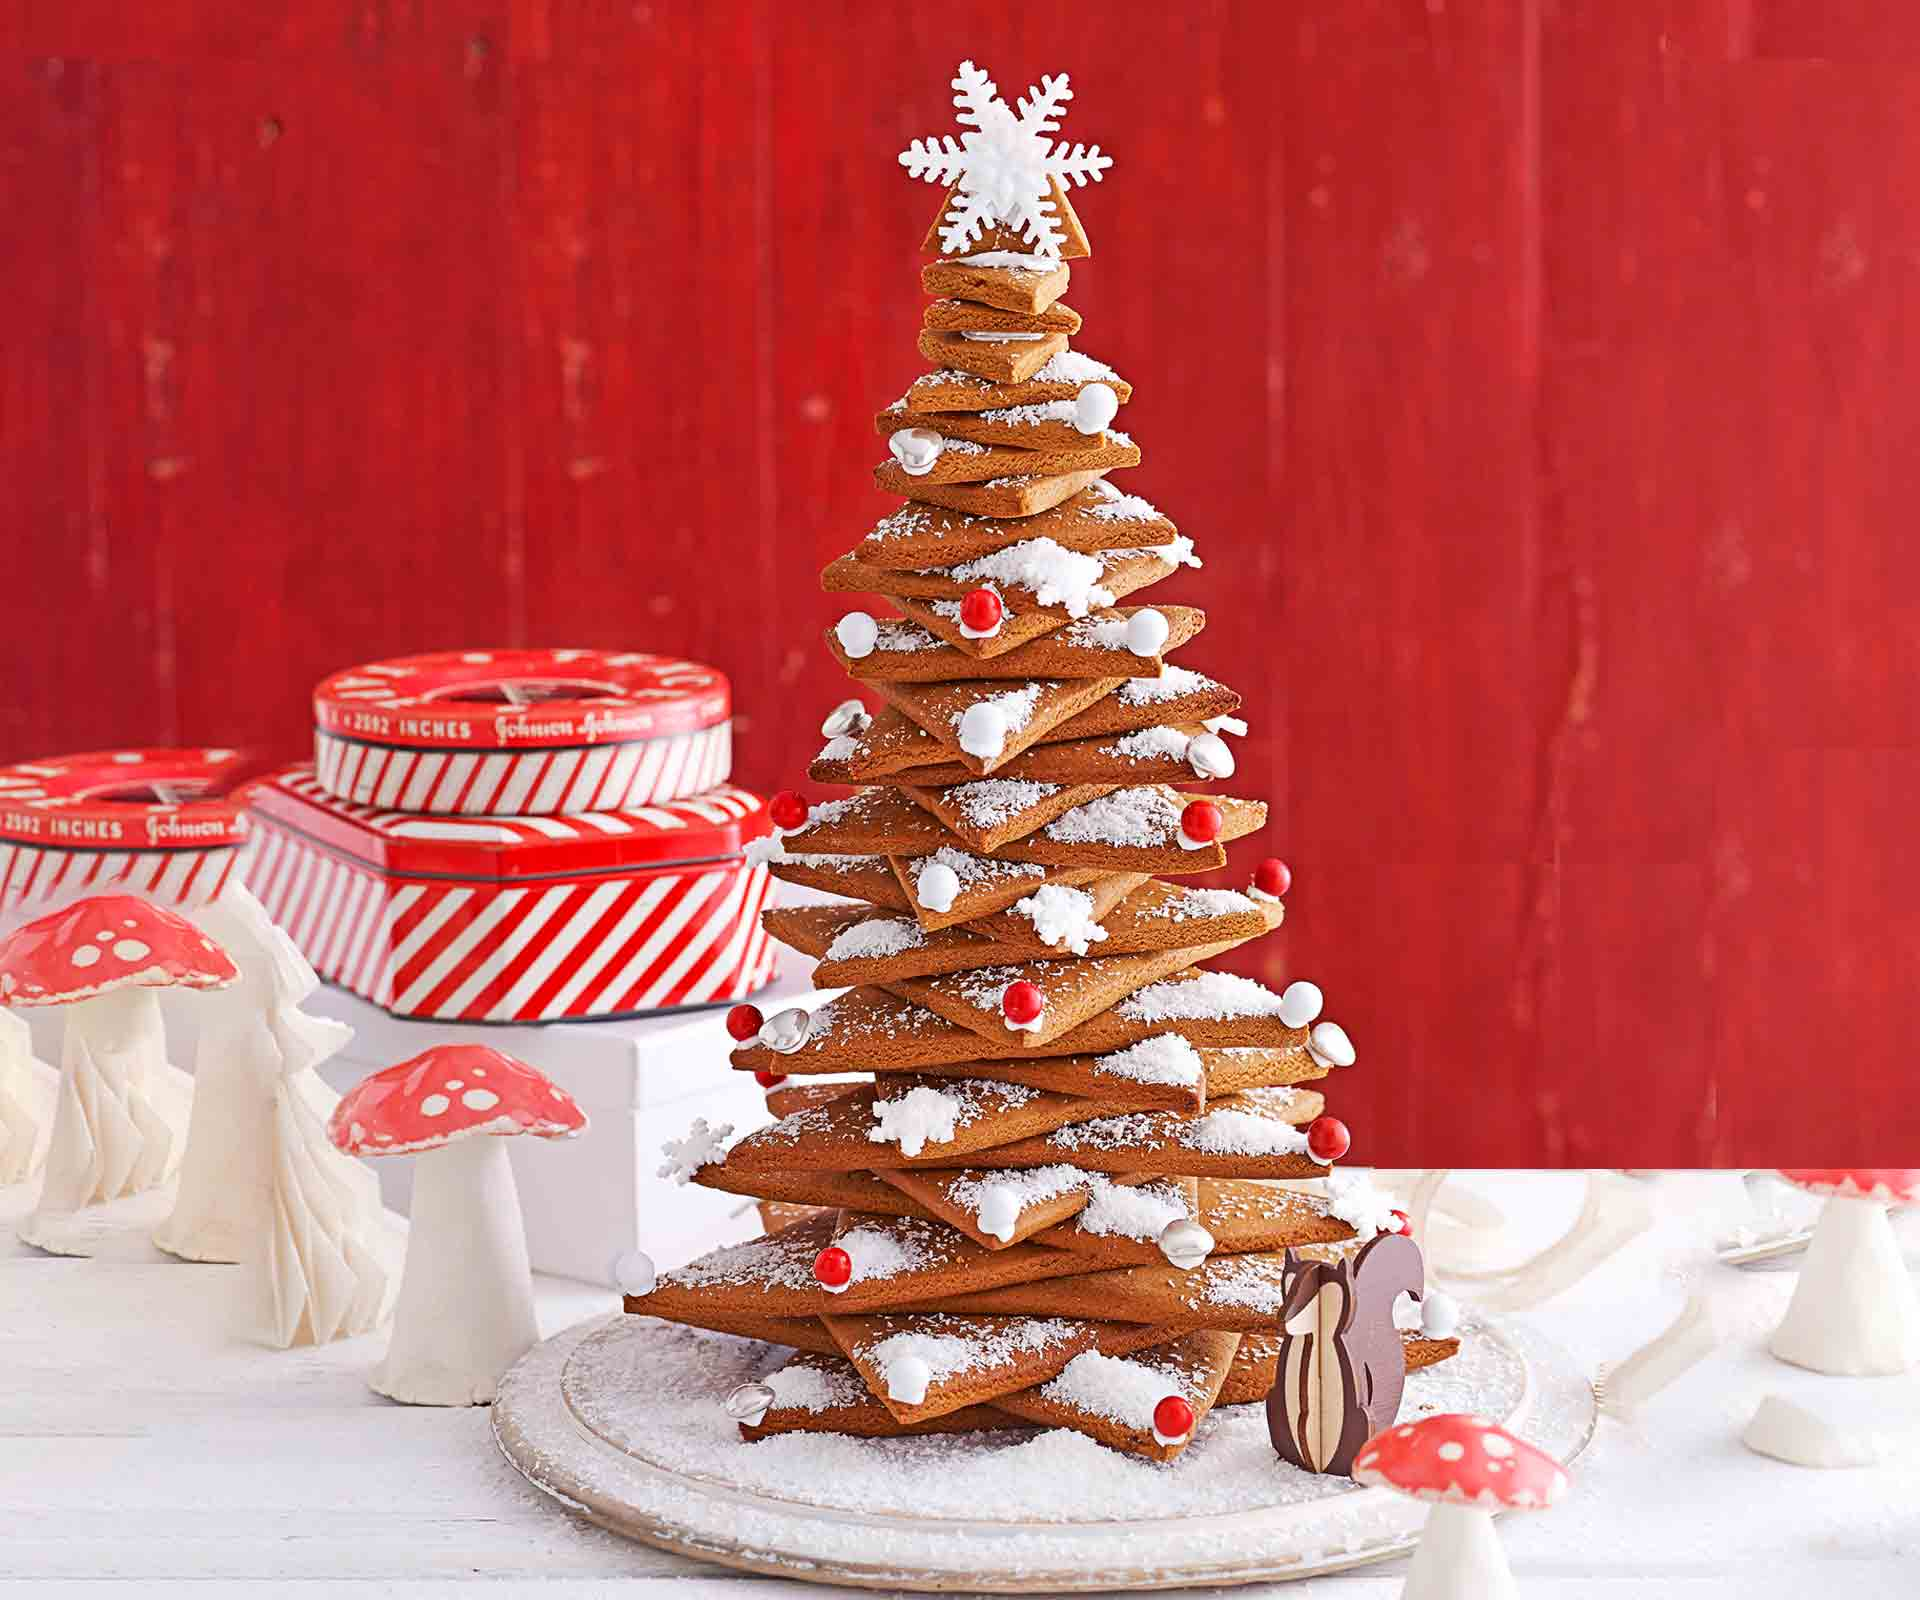 Gingerbread Christmas tree made from star shaped biscuits